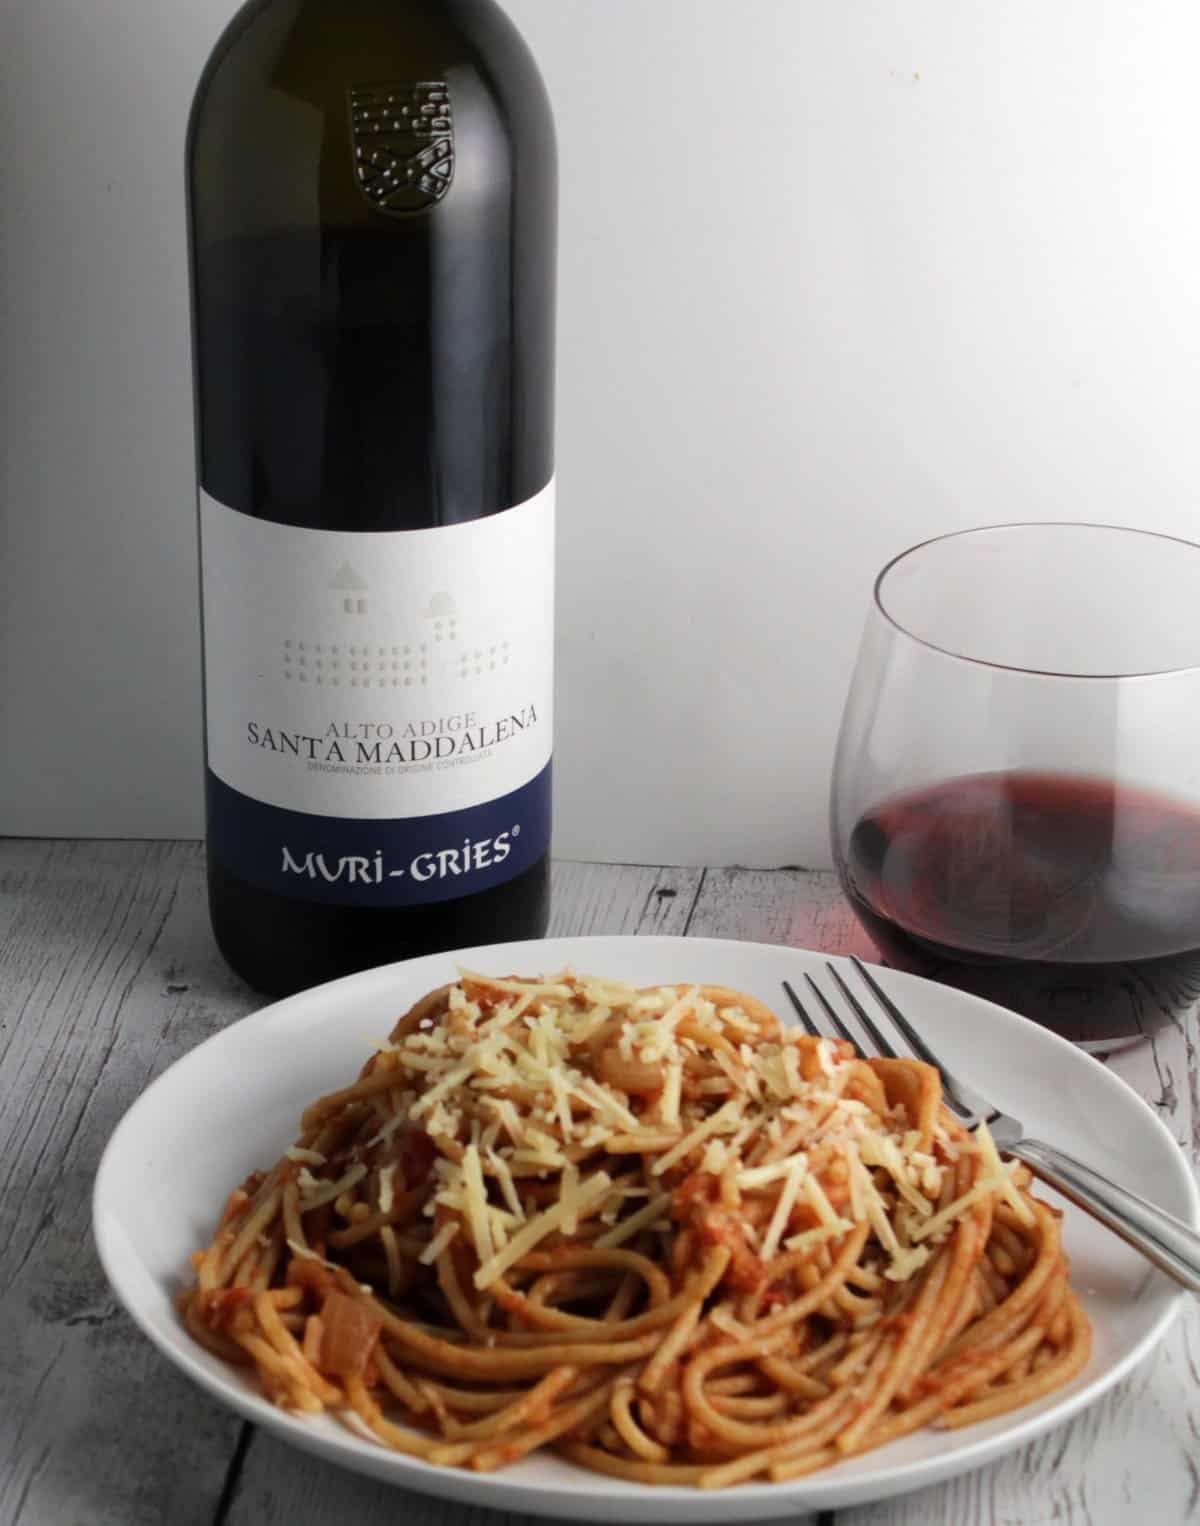 spaghetti with apple tomato sauce and a red wine